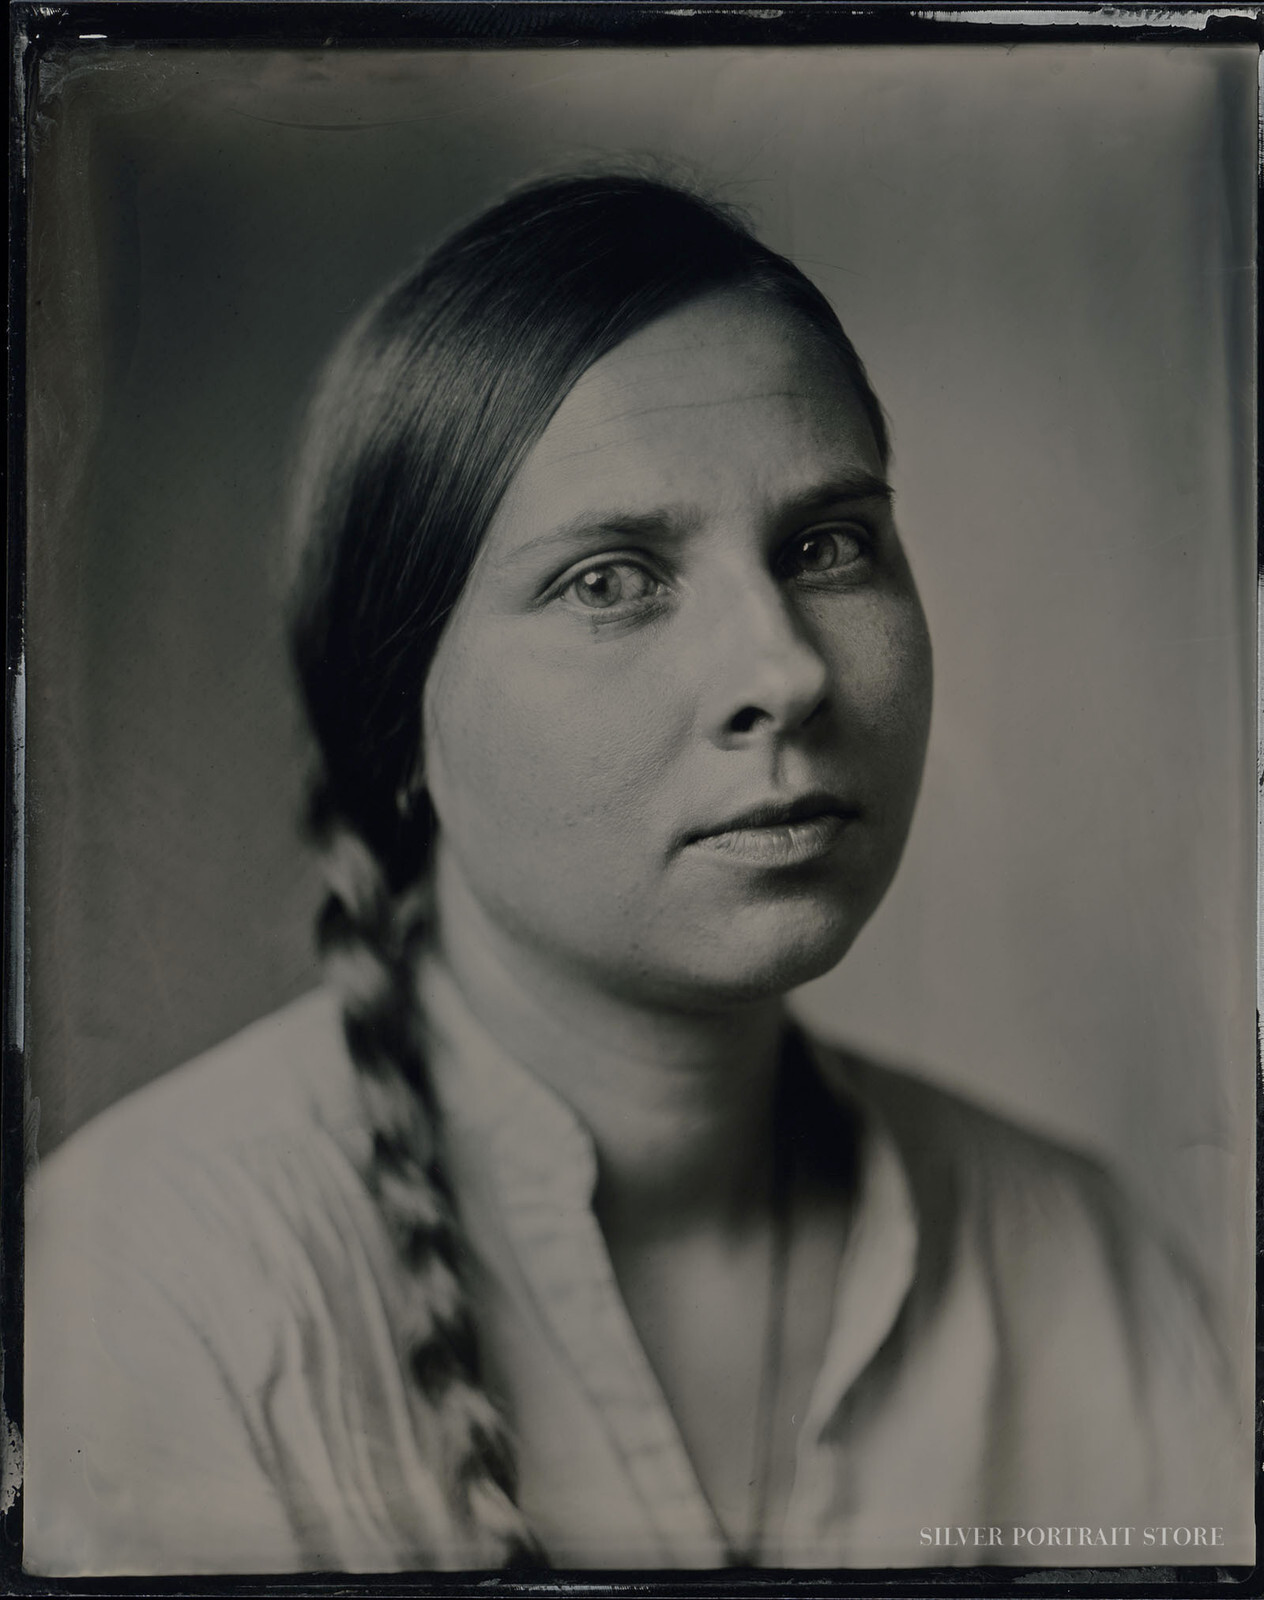 Anna-Silver Portrait Store-scan from Wet plate collodion-Tintype 10 x 12 cm.